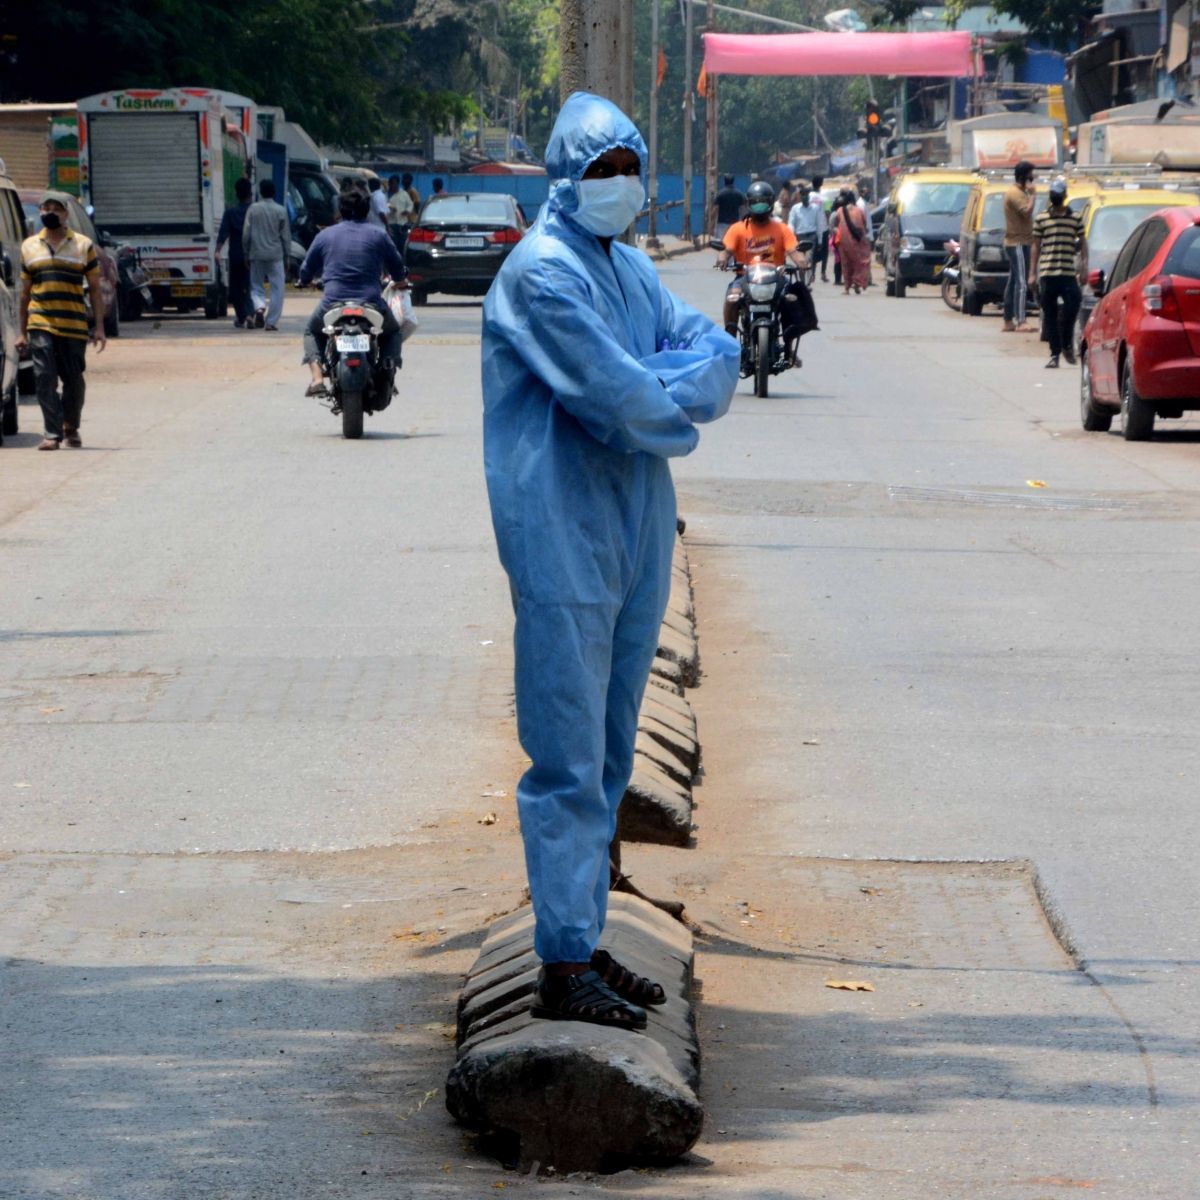 Coronavirus in Mumbai: 57 deaths in 24 hours is city's highest single-day count